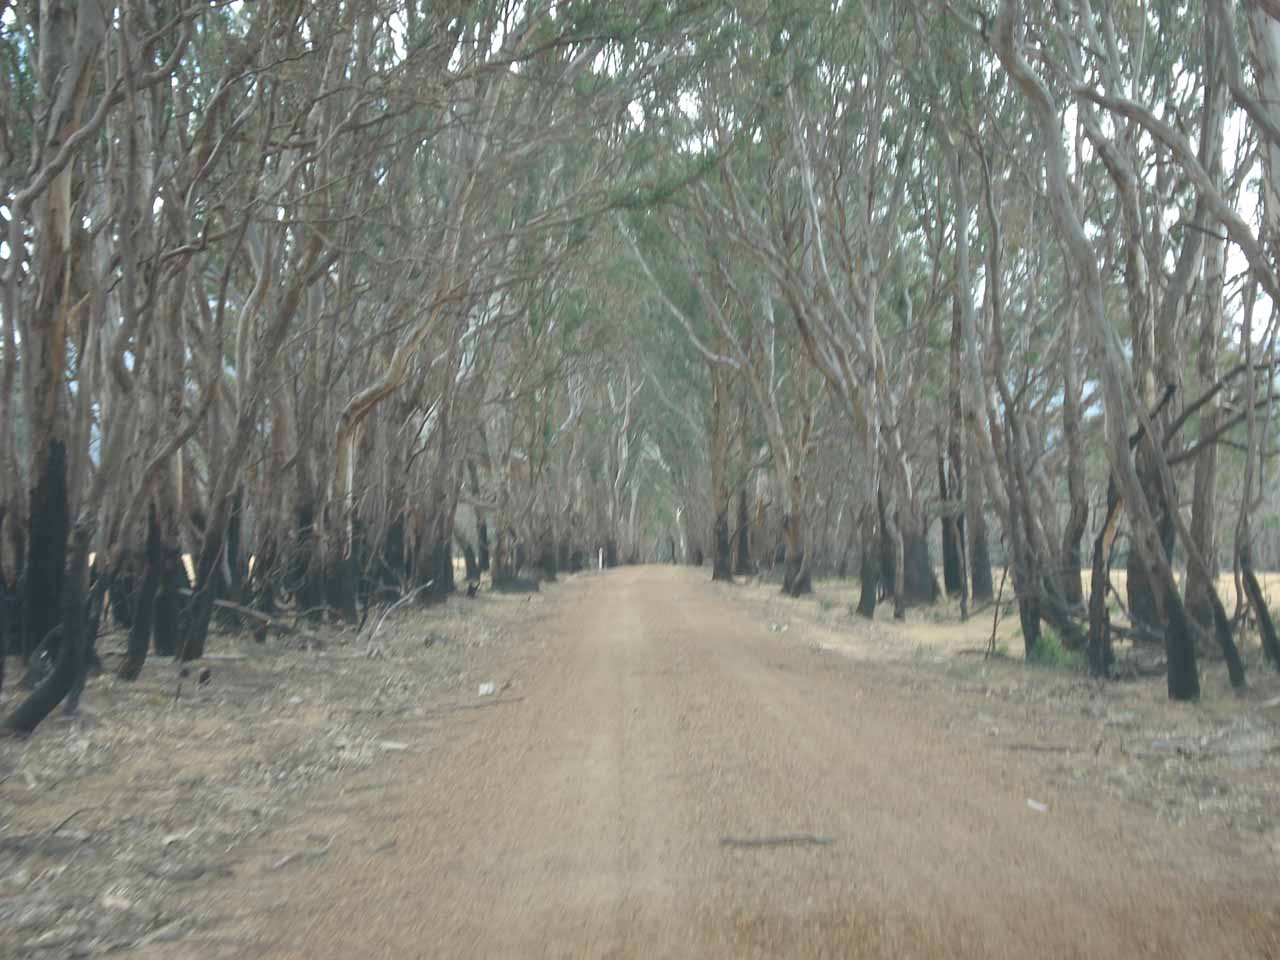 Following a road flanked by burnt trees